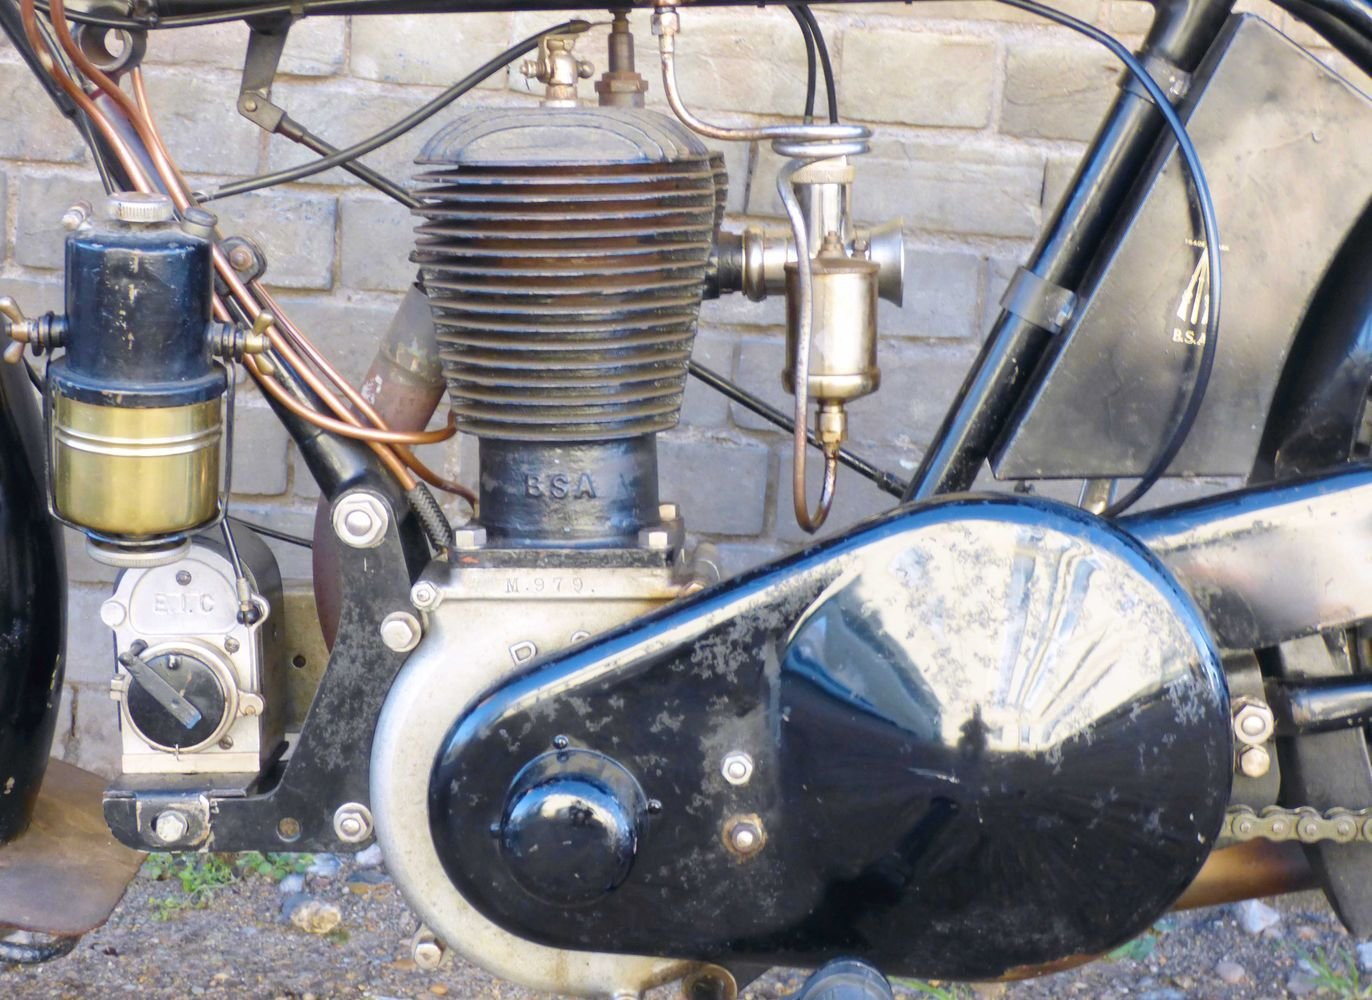 1925 BSA S25 500cc For Sale (picture 4 of 6)